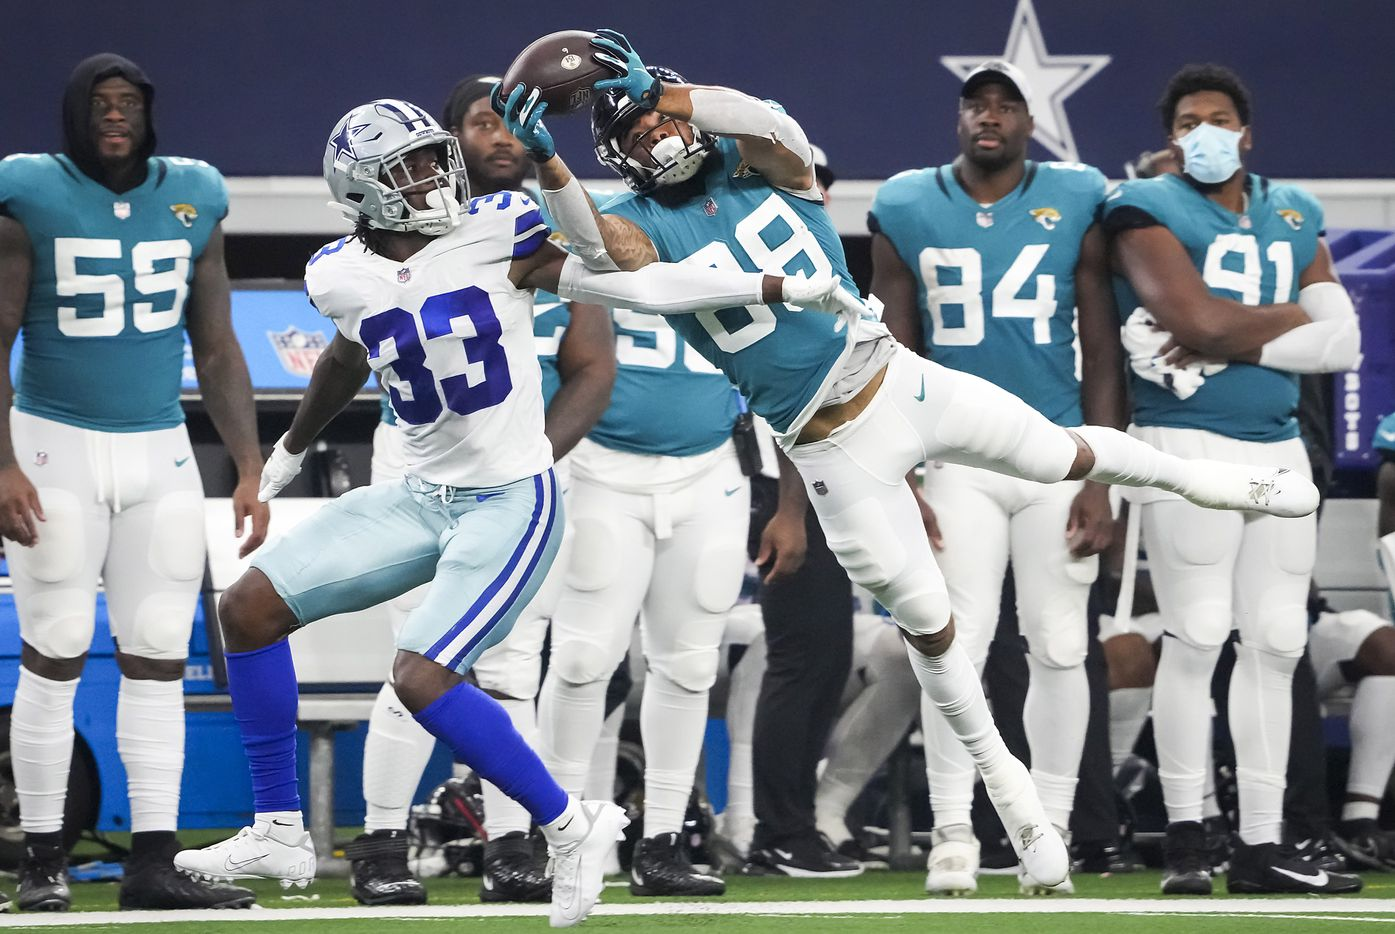 Jacksonville Jaguars wide receiver Jeff Cotton, Jr., (88) hauls in a long pass as Dallas Cowboys defensive back Deante Burton (33) defends during the first half of a preseason NFL football game at AT&T Stadium on Sunday, Aug. 29, 2021, in Arlington. (Smiley N. Pool/The Dallas Morning News)